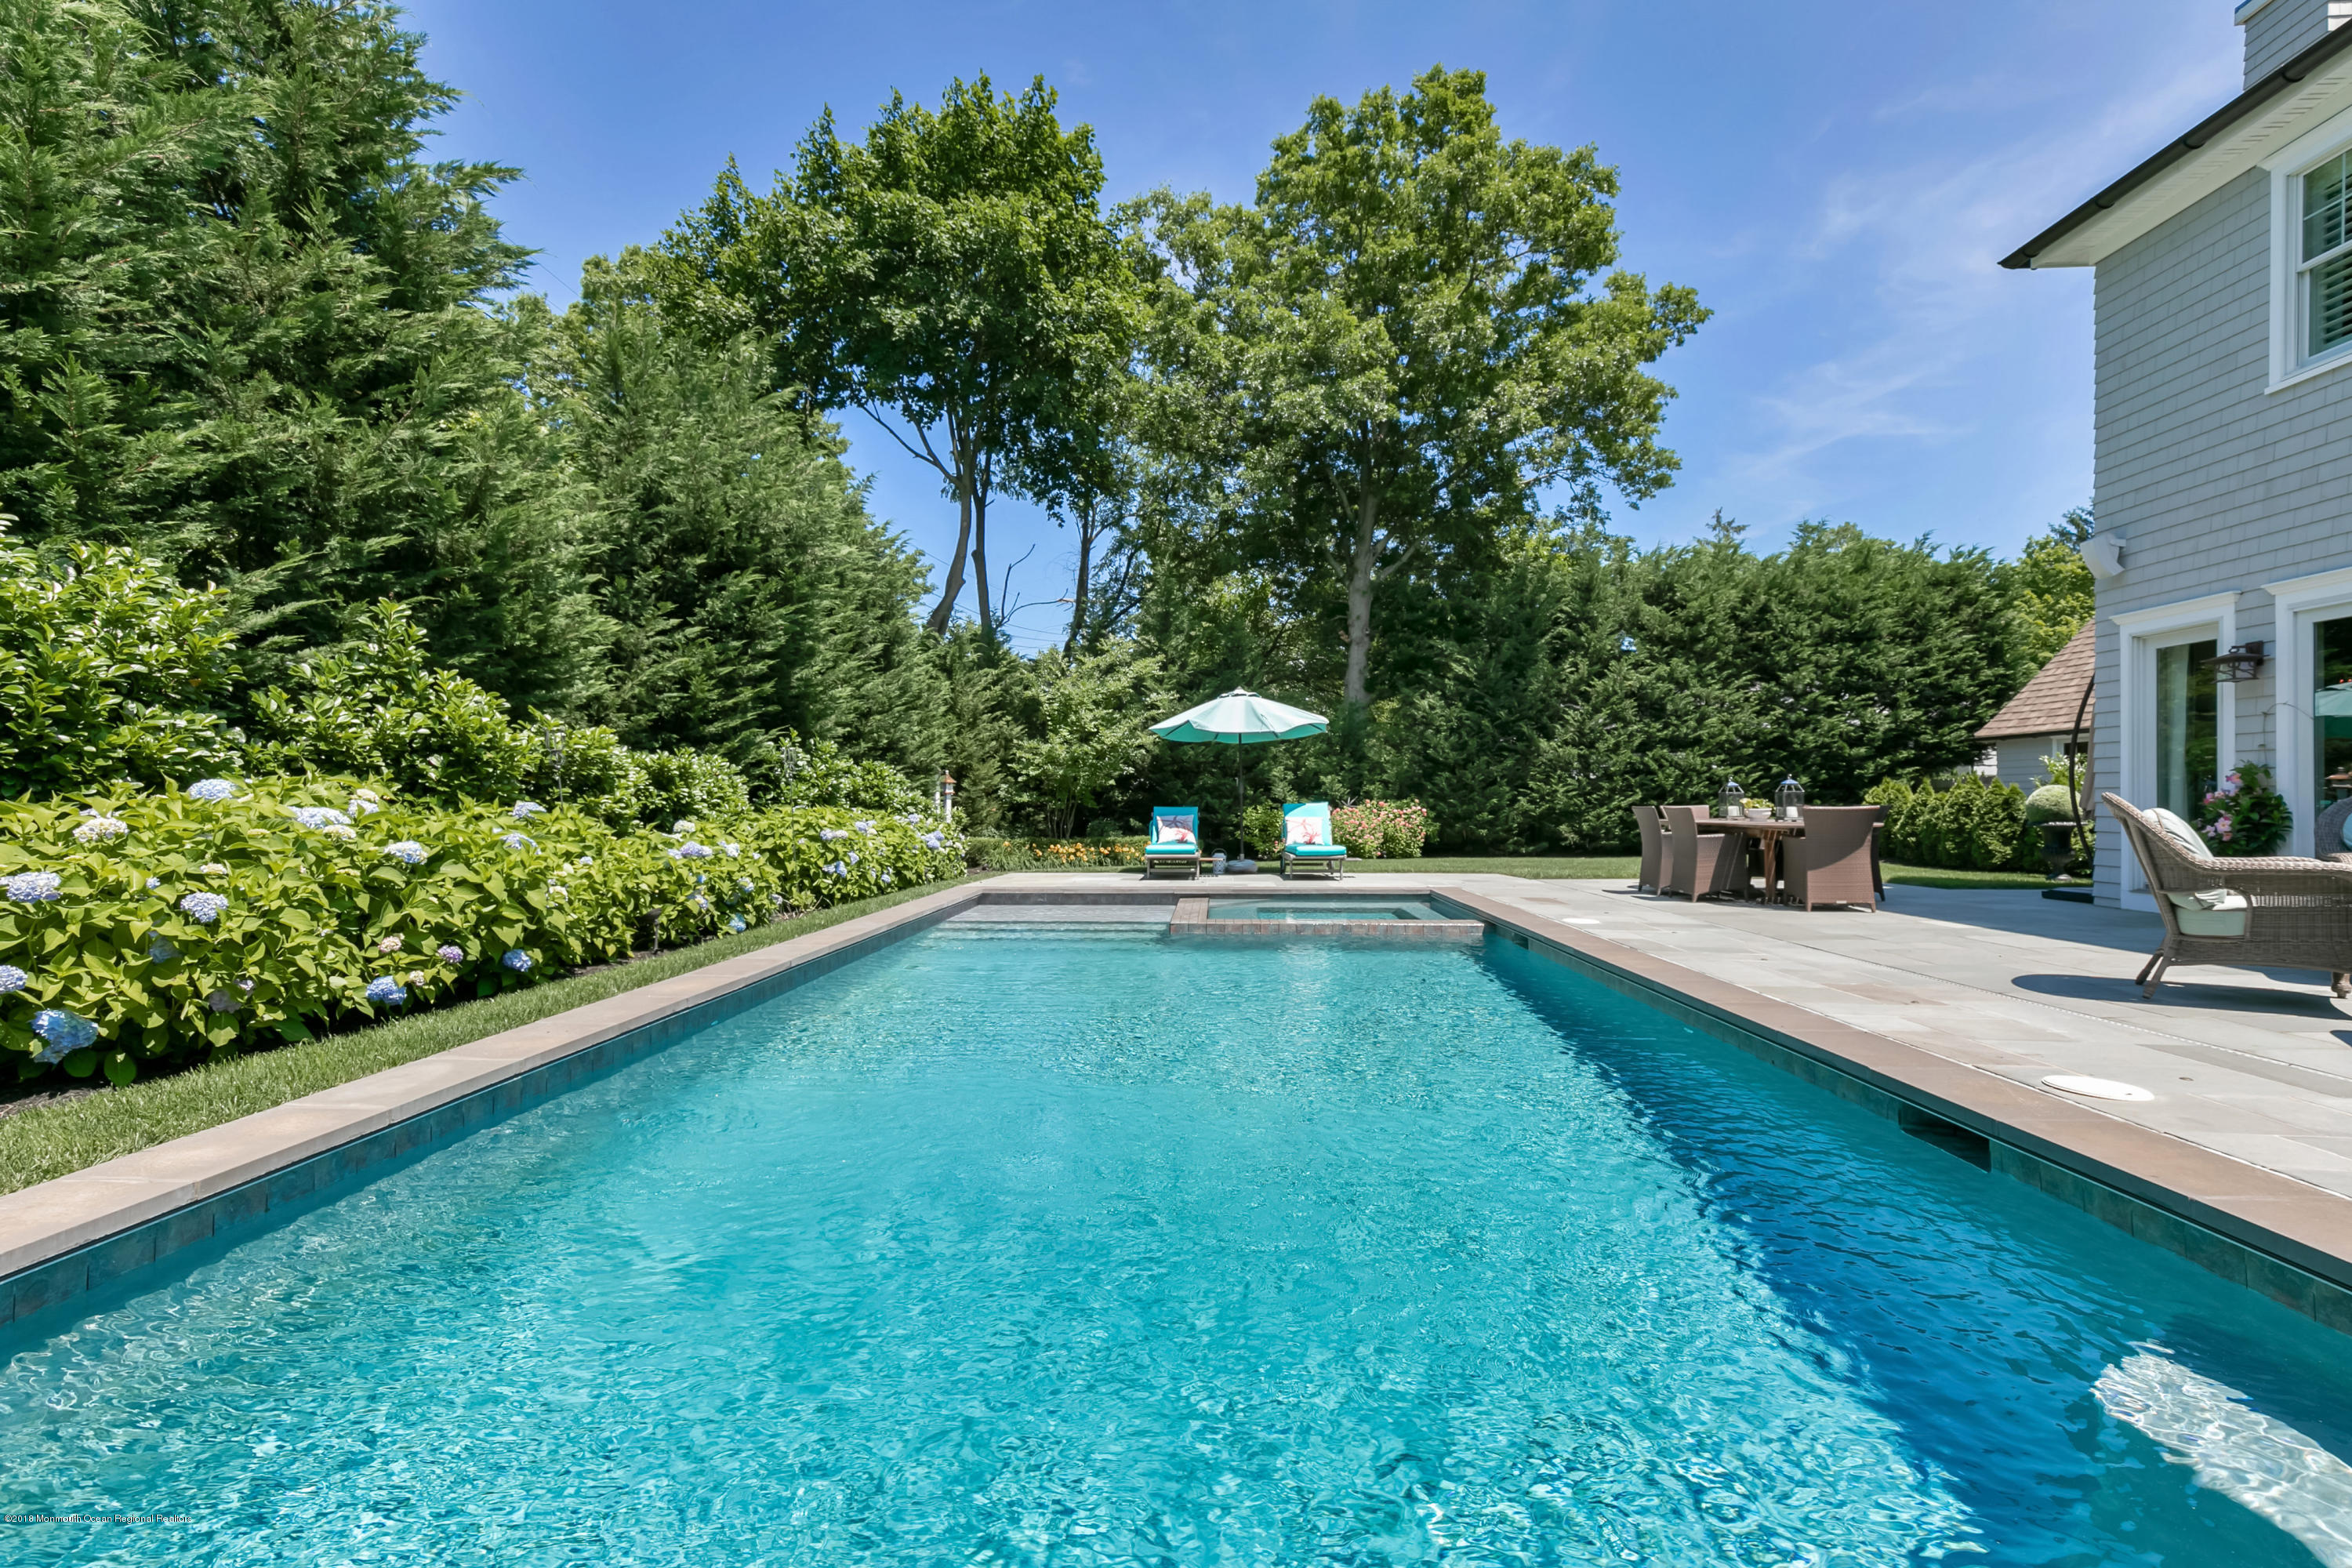 Photo of 4 Blossom Road, Rumson, NJ 07760